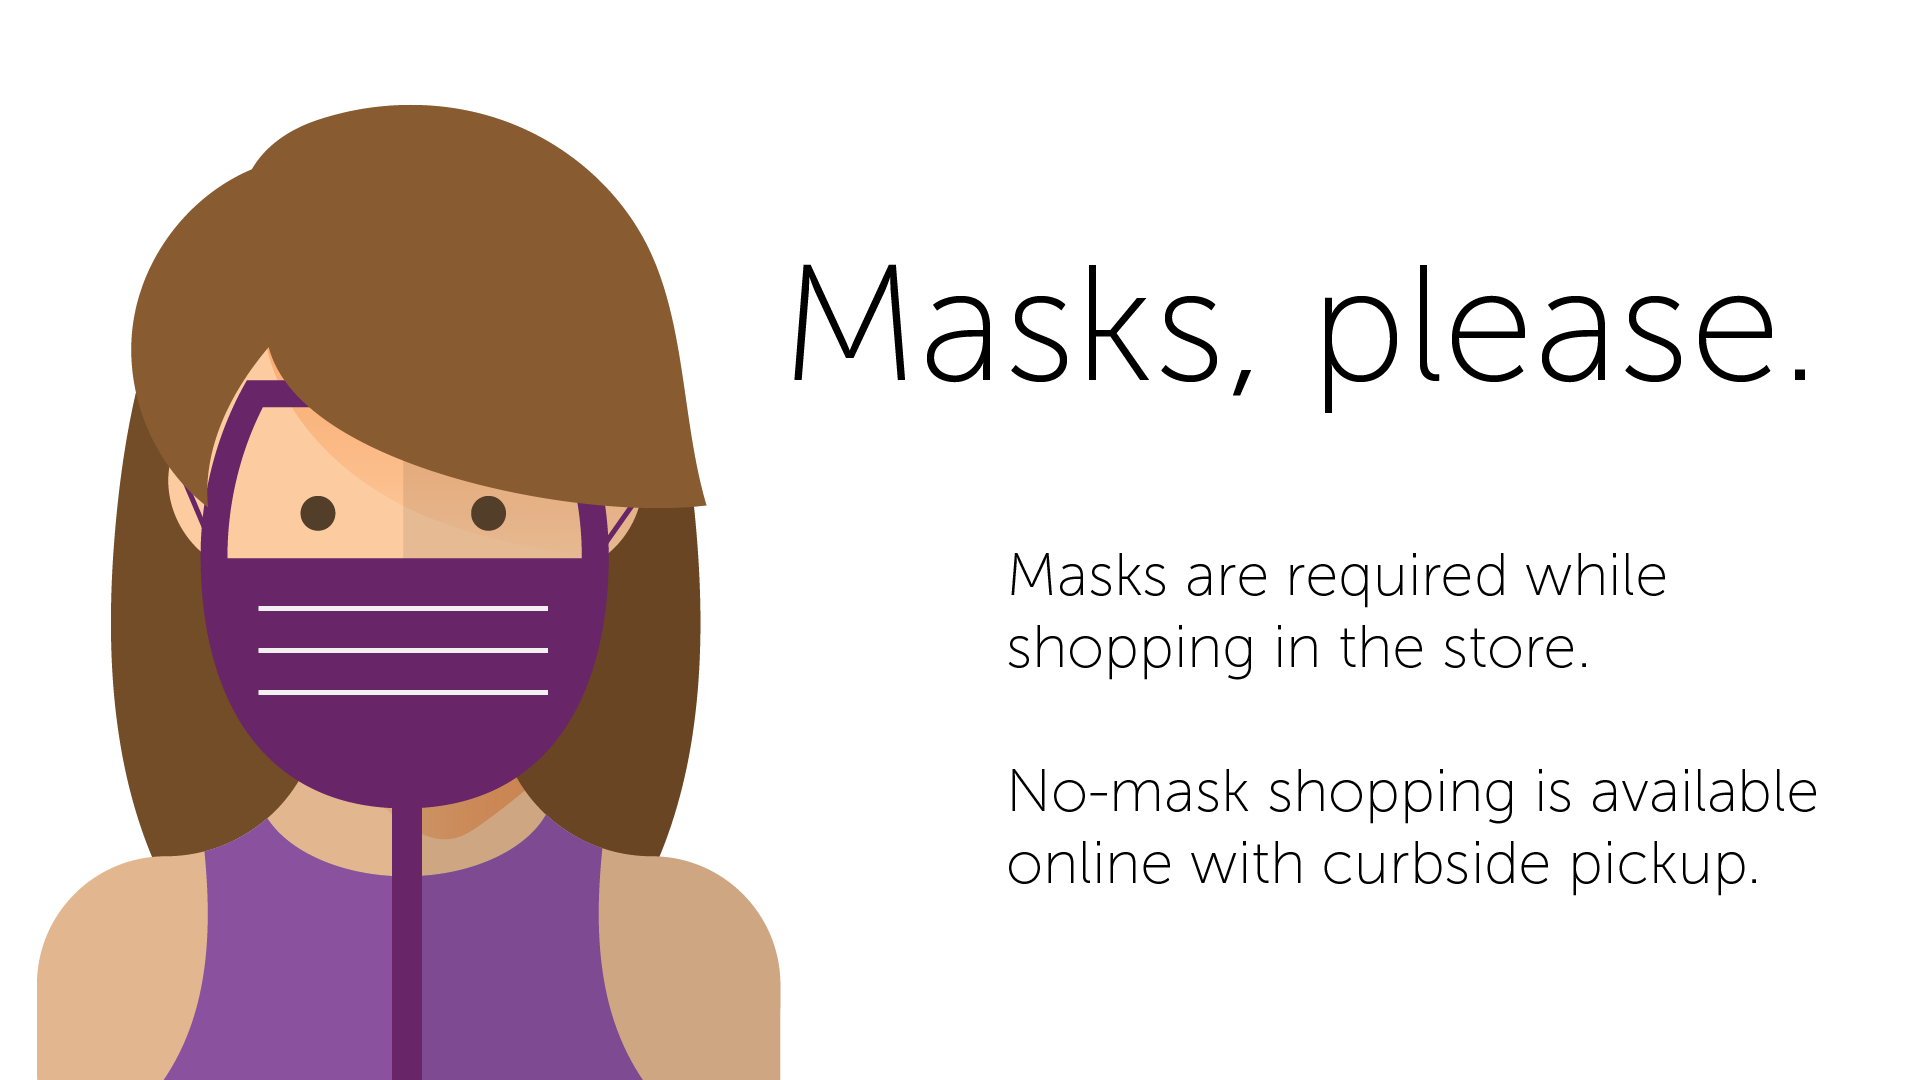 Masks, please